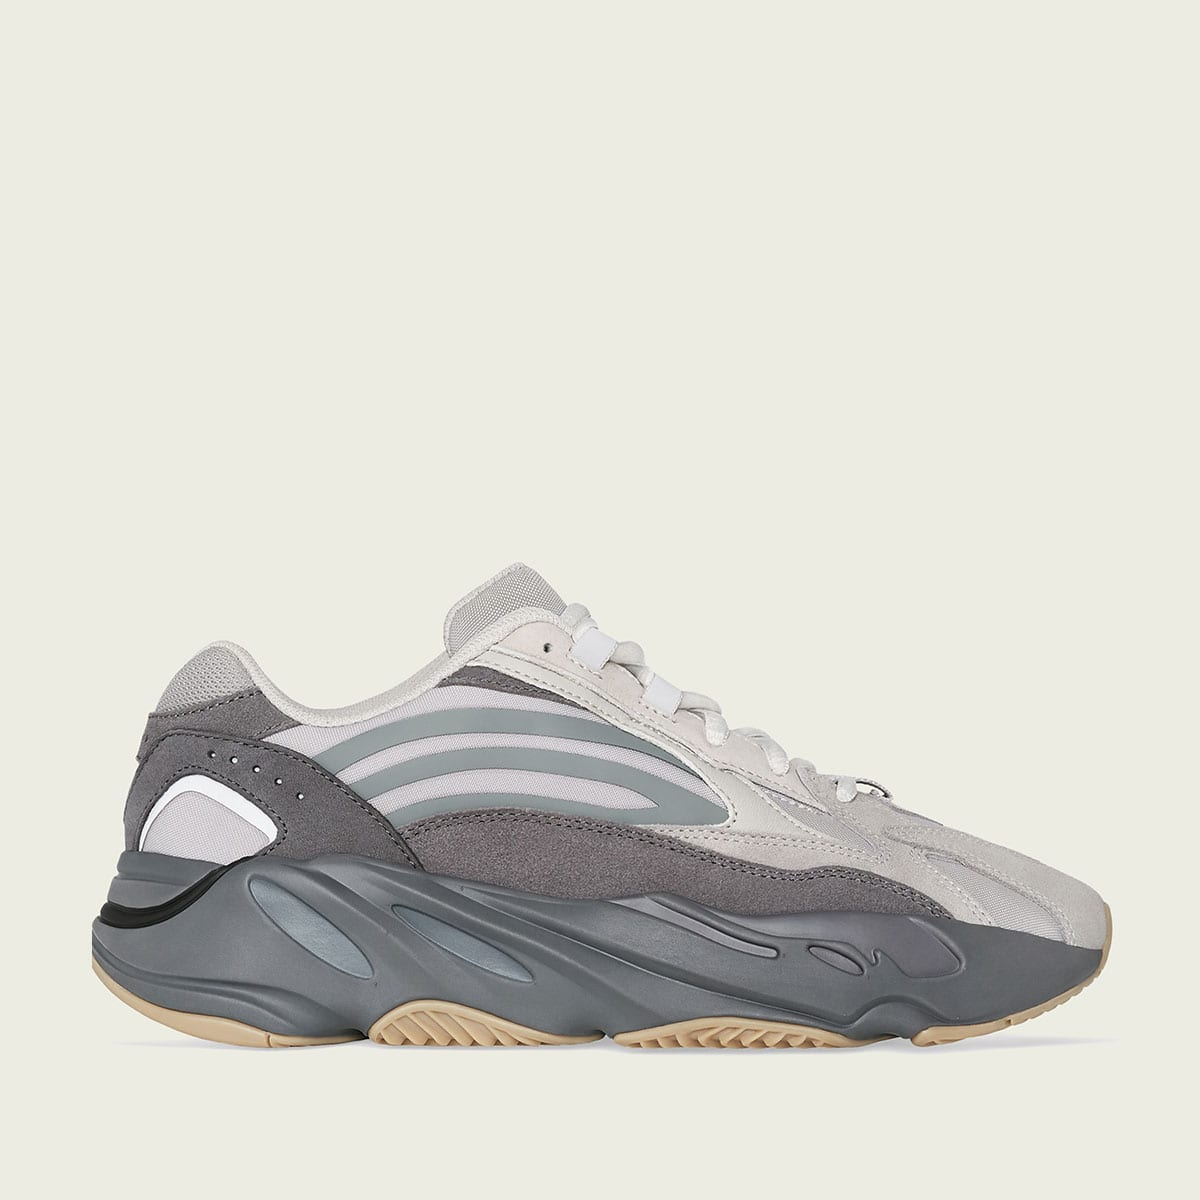 adidas YEEZY BOOST 700 V2 TEPHRA/TEPHRA/TEPHRA 19FW-S_photo_large